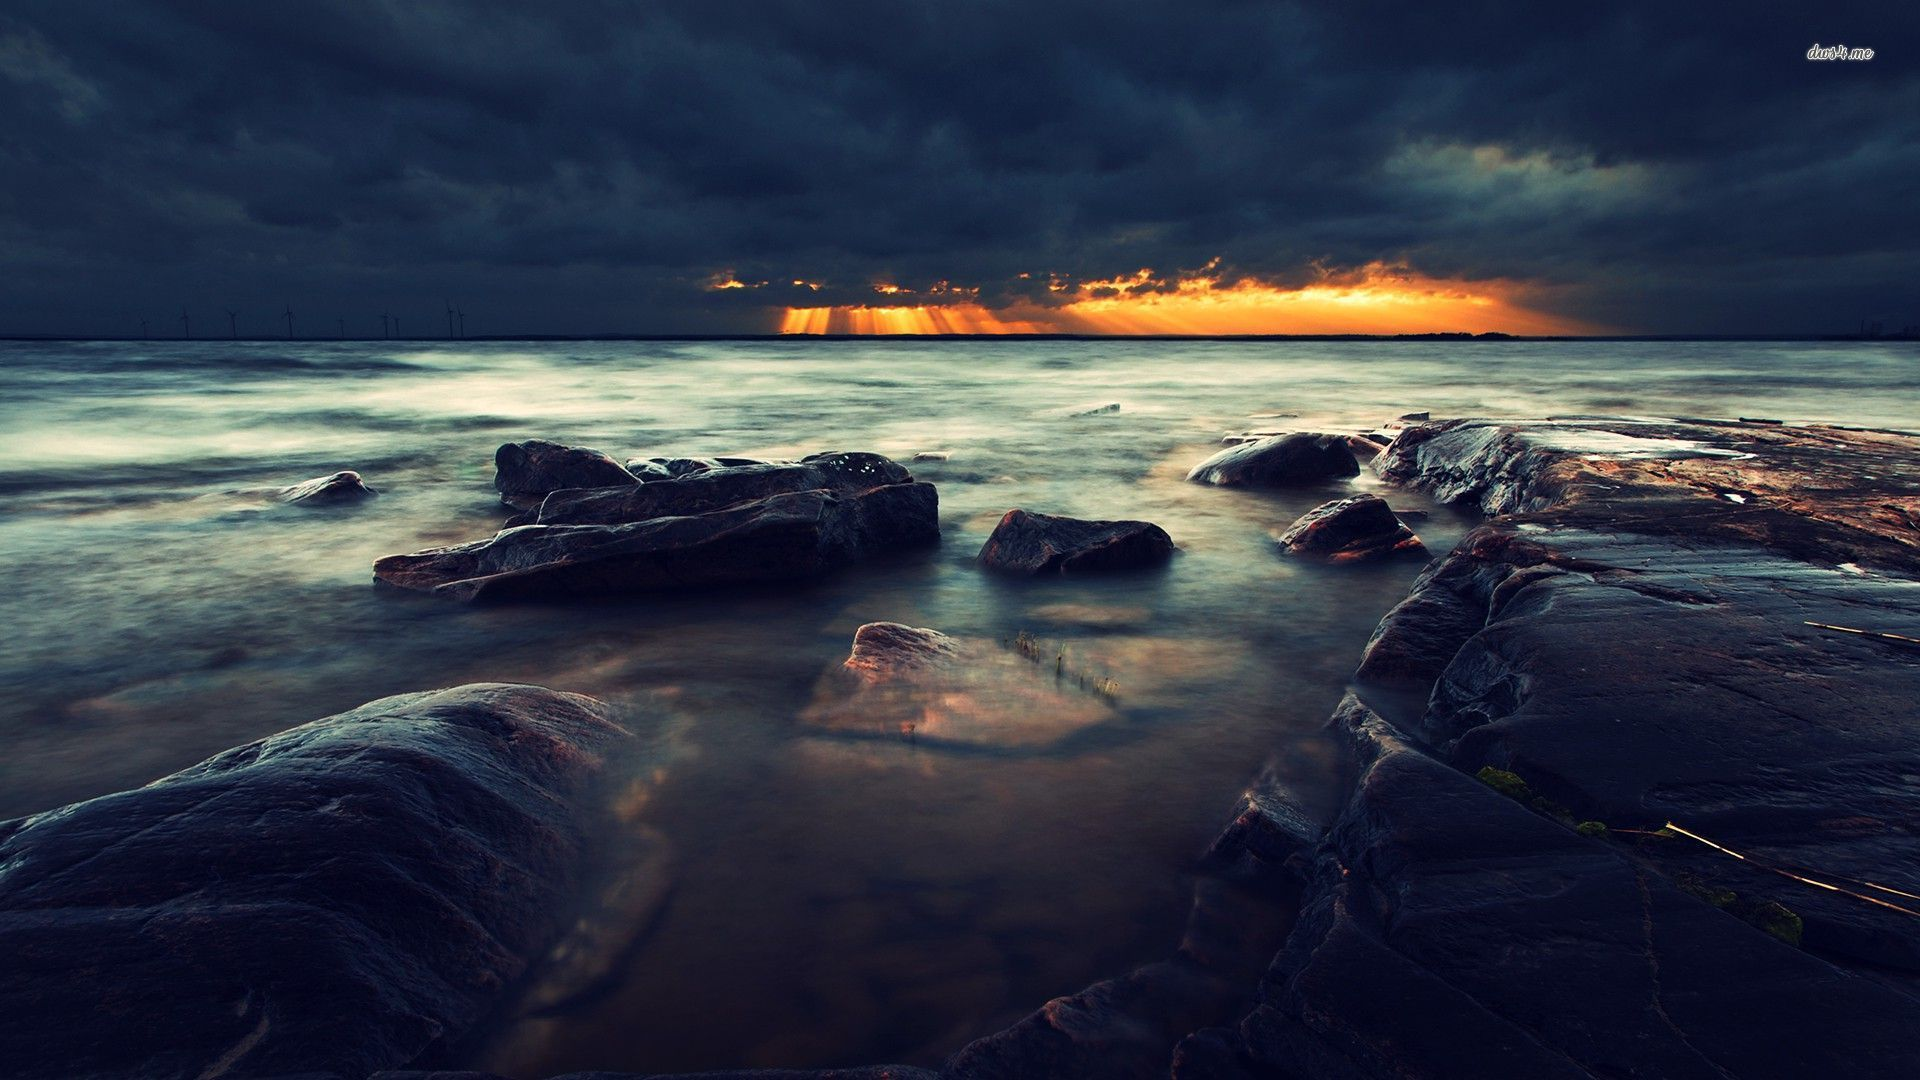 Beach And Ocean Storm: Ocean Backgrounds For Desktop With Quotes. QuotesGram